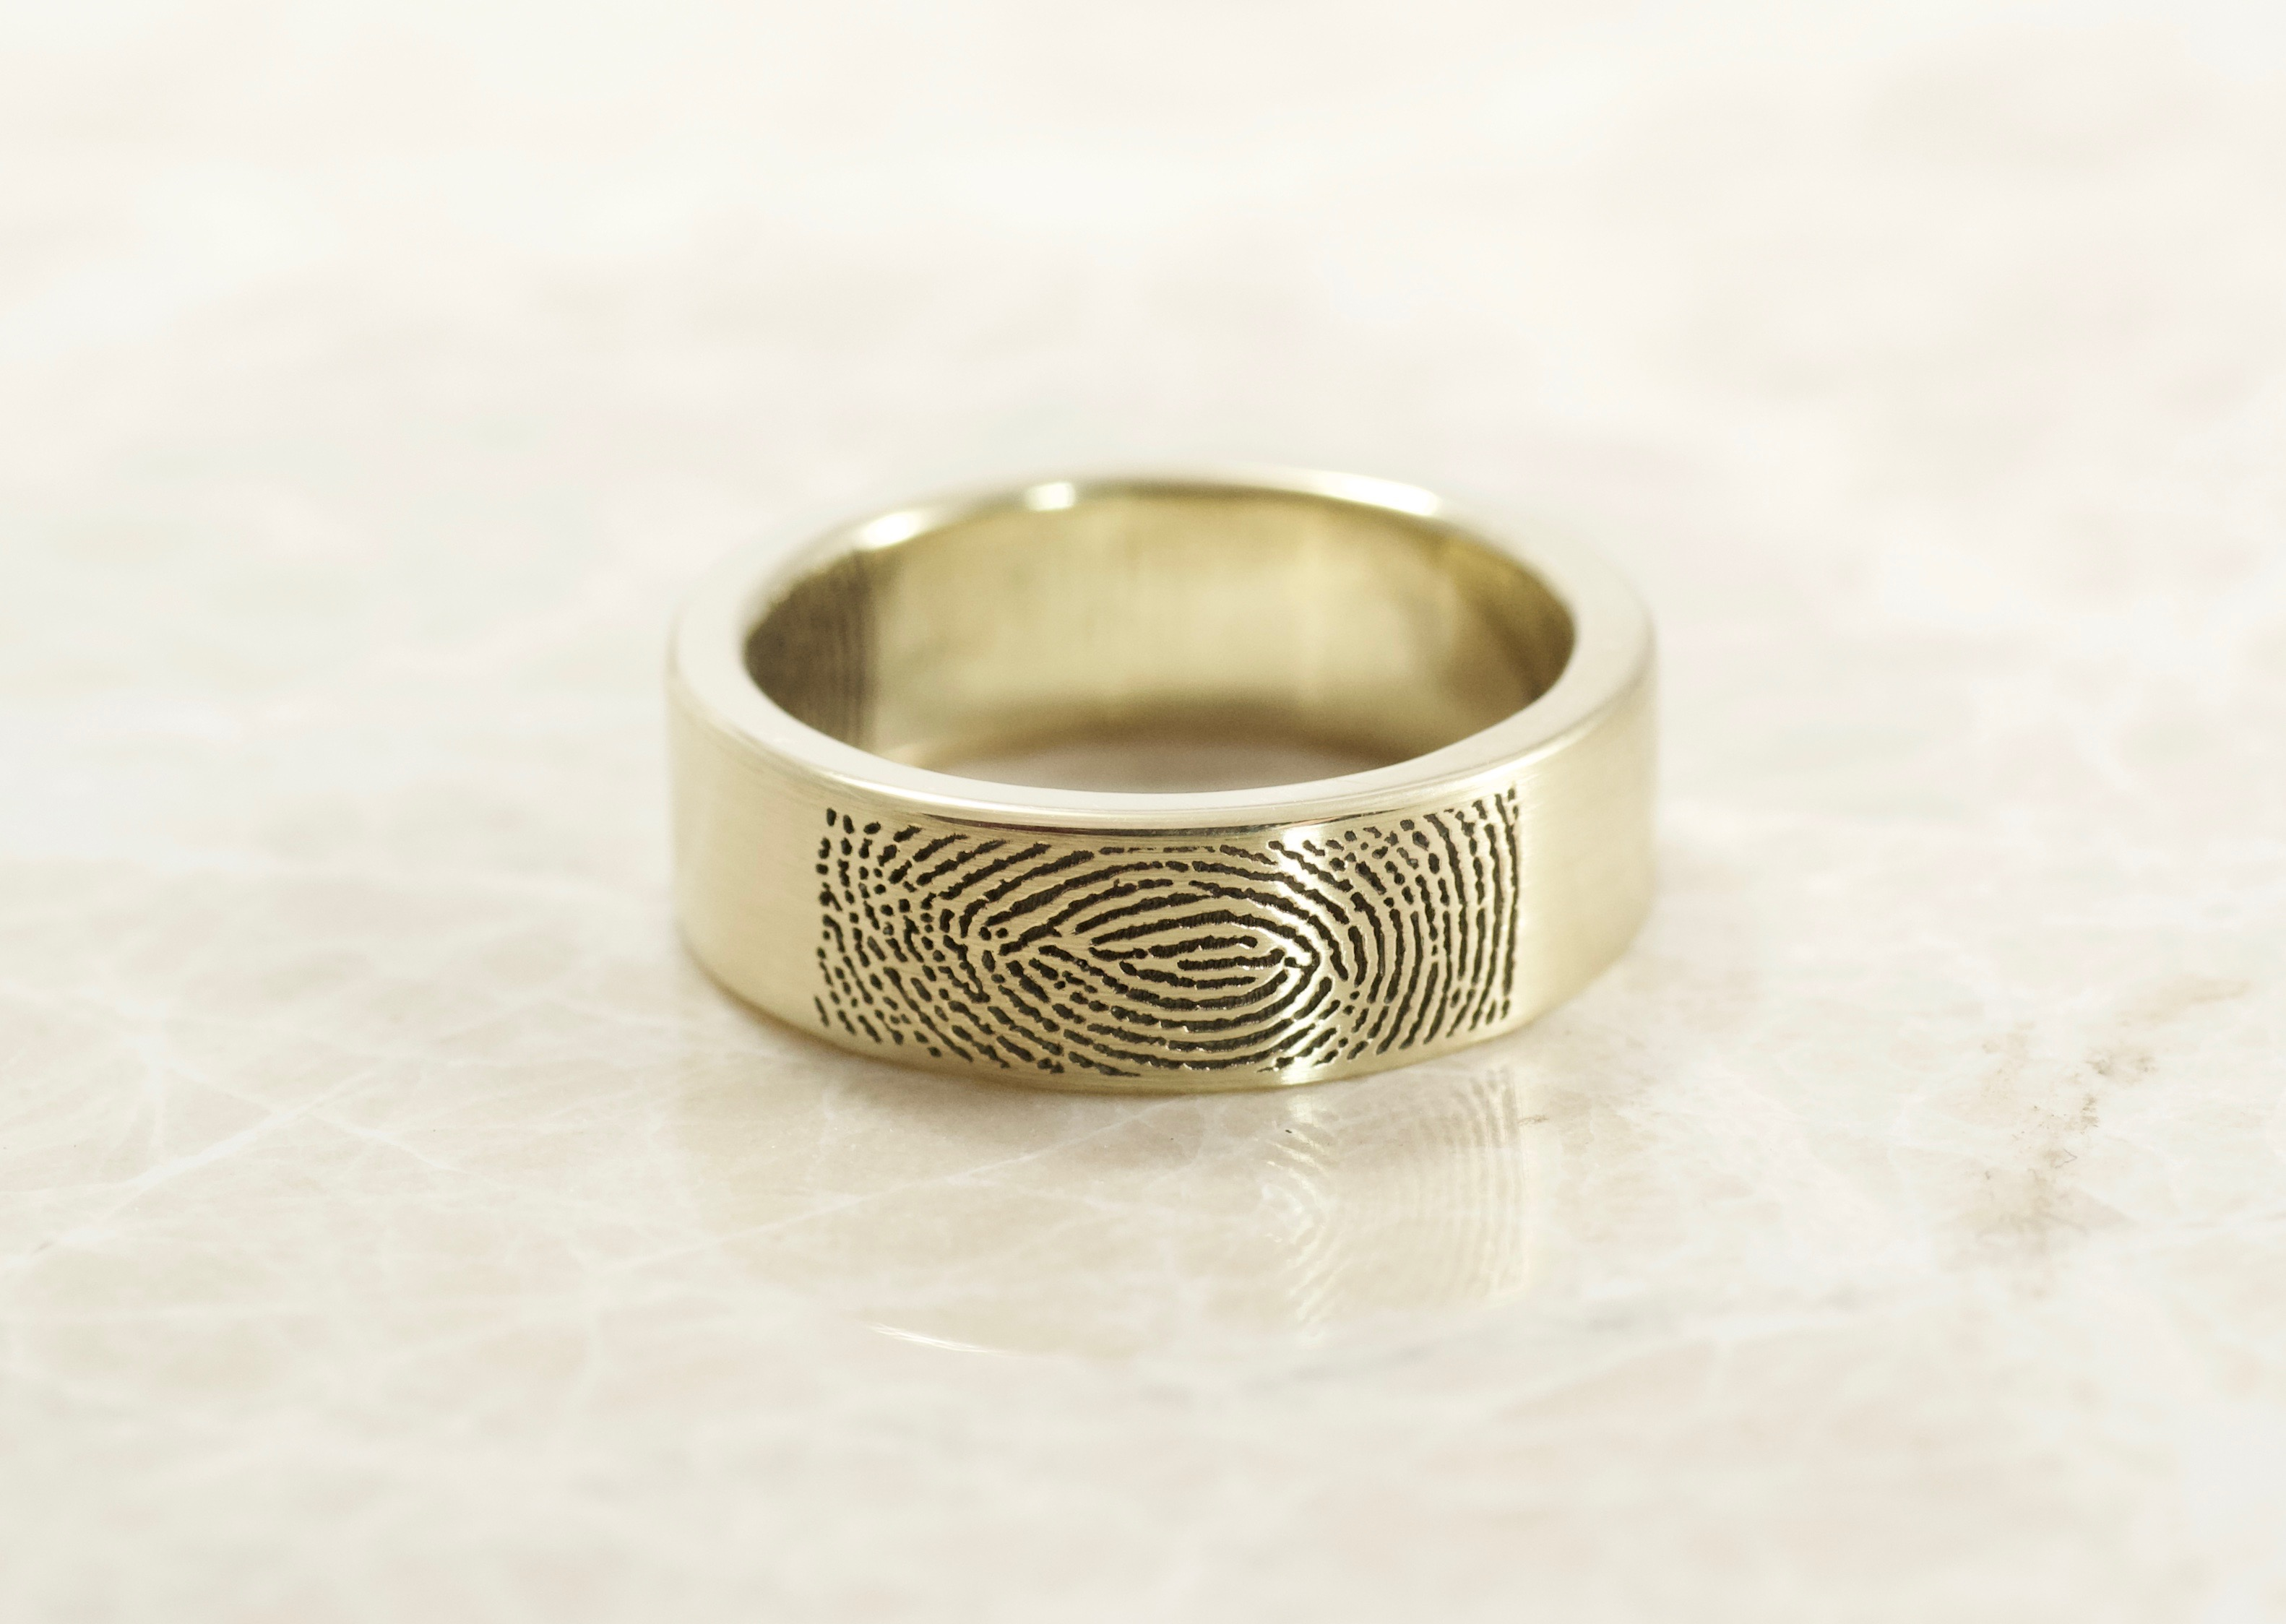 Custom Flat band in yellow gold fingerprint with your fingerprint